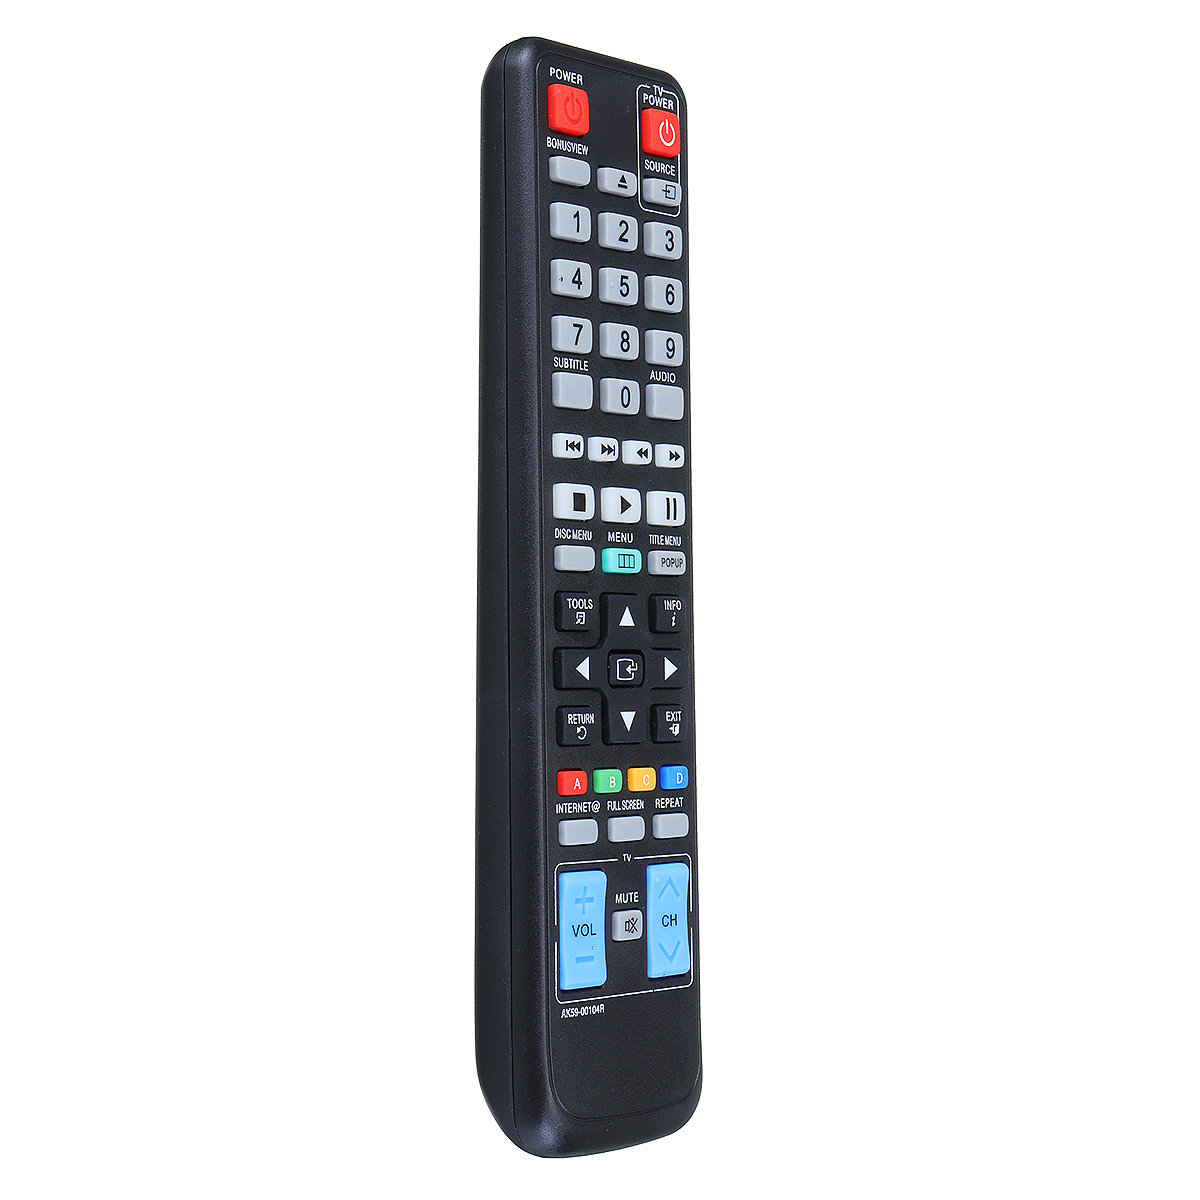 Replacement Remote Control For Samsung BD-C5300 BD-C5500 BD-D5100 BD-C7500 Blu-ray DVD Player